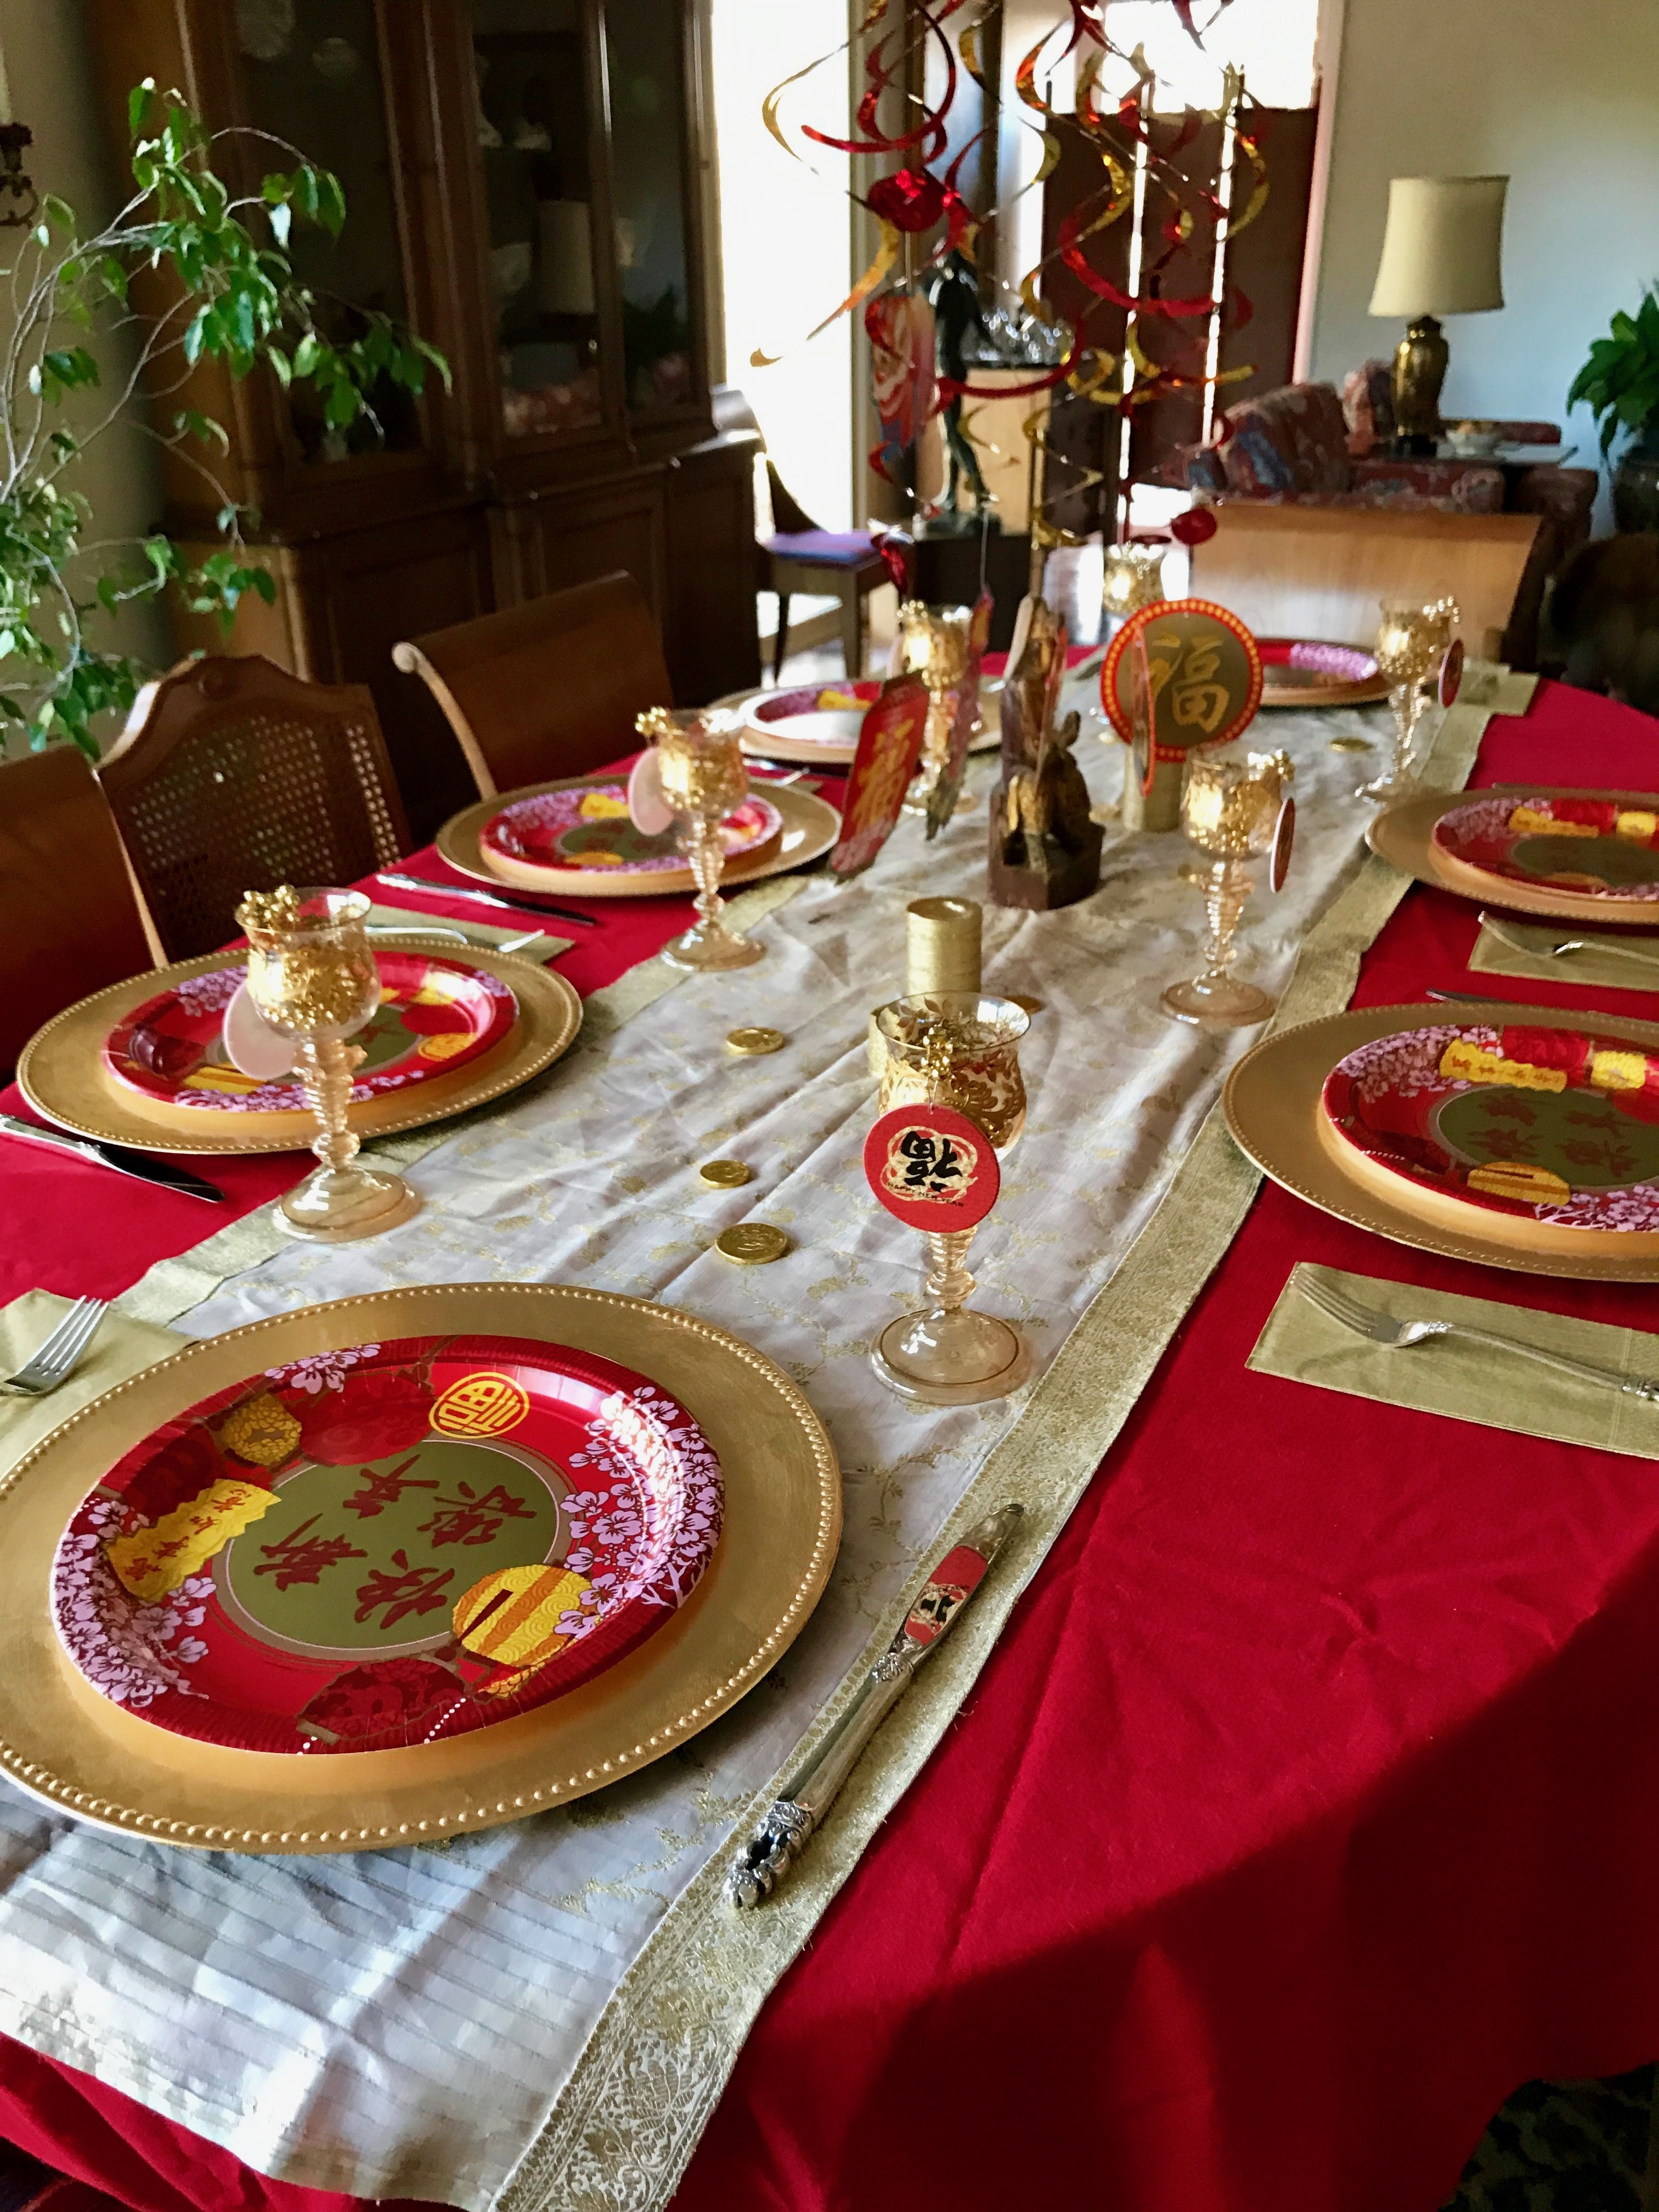 Pin by Carolyn Stevenson on Chinese new years | Asian ...